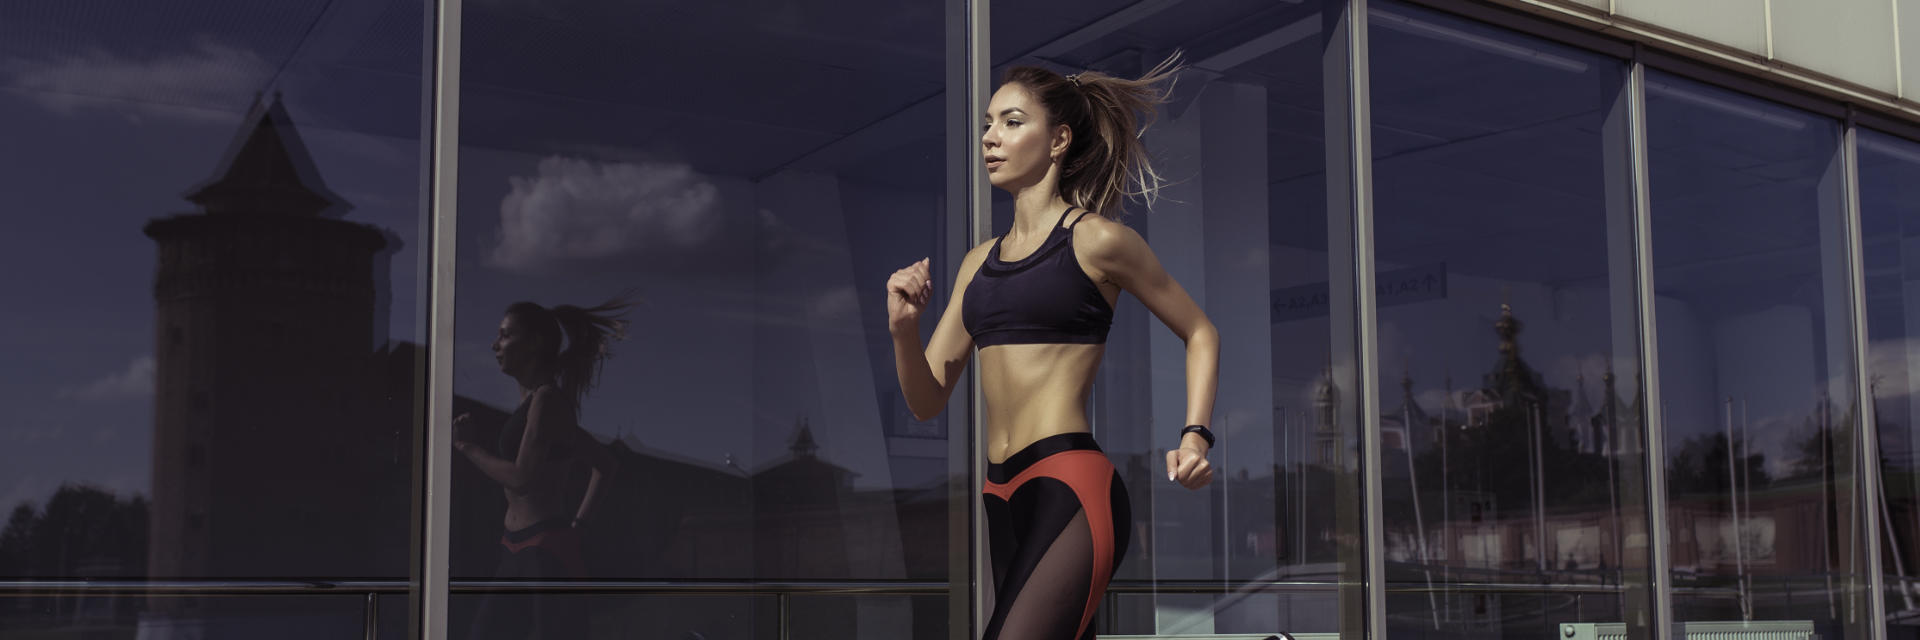 A fit young woman running along an office building with glass window wall.